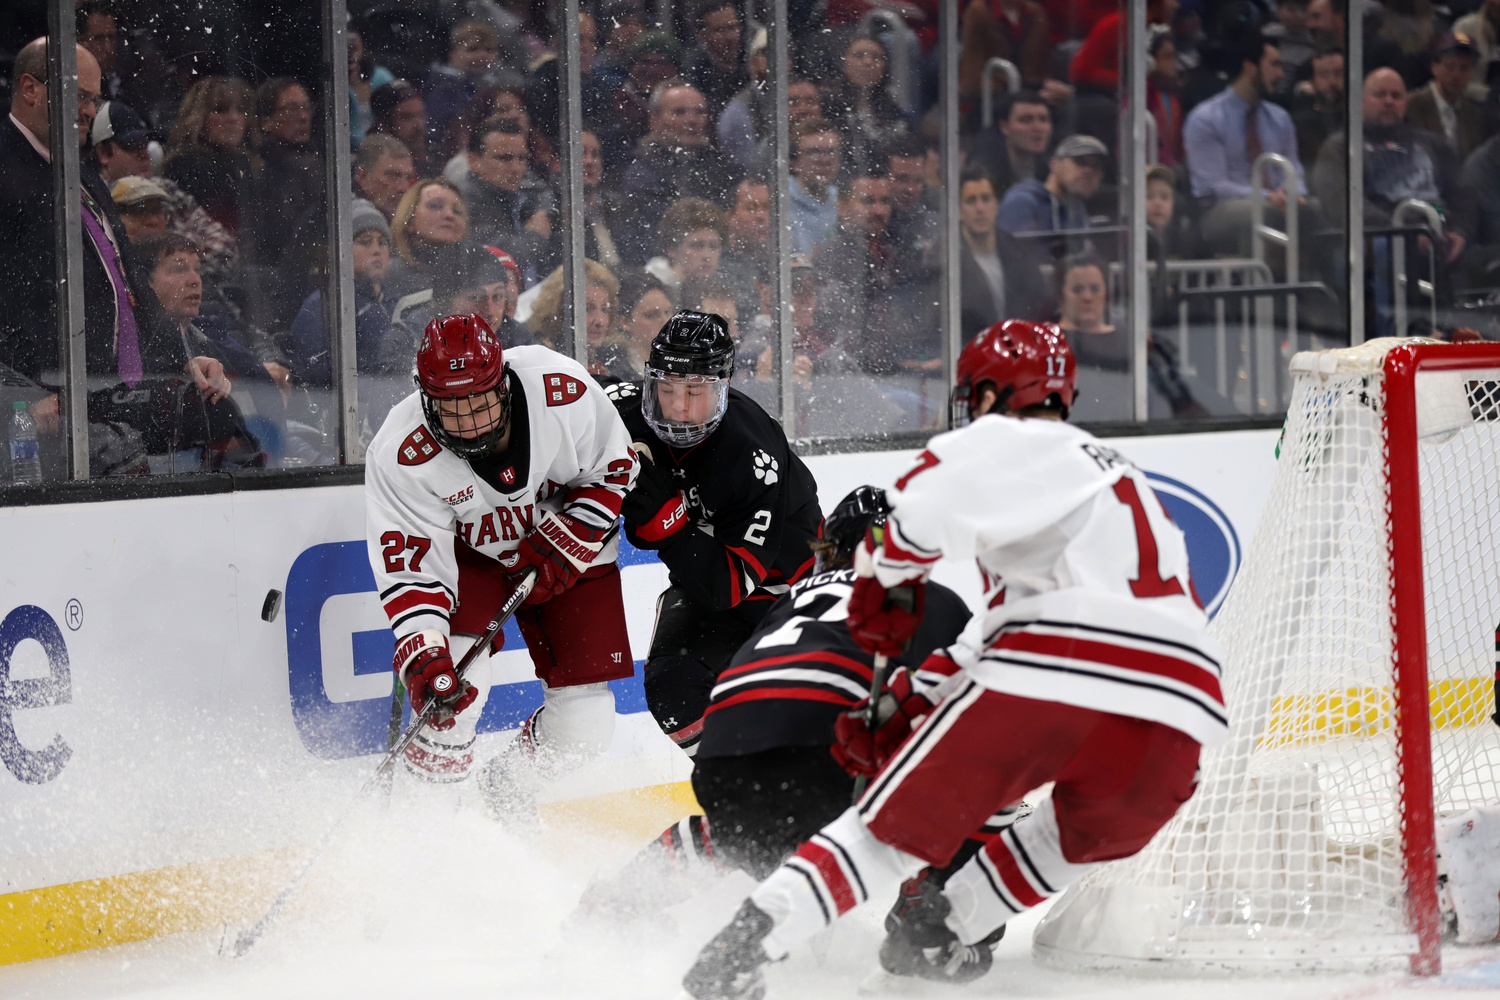 First-year forward Austin Wong of Harvard fights to maintain possession behind the net amid pressure from Huskies sophomore defenseman Jordan Harris.